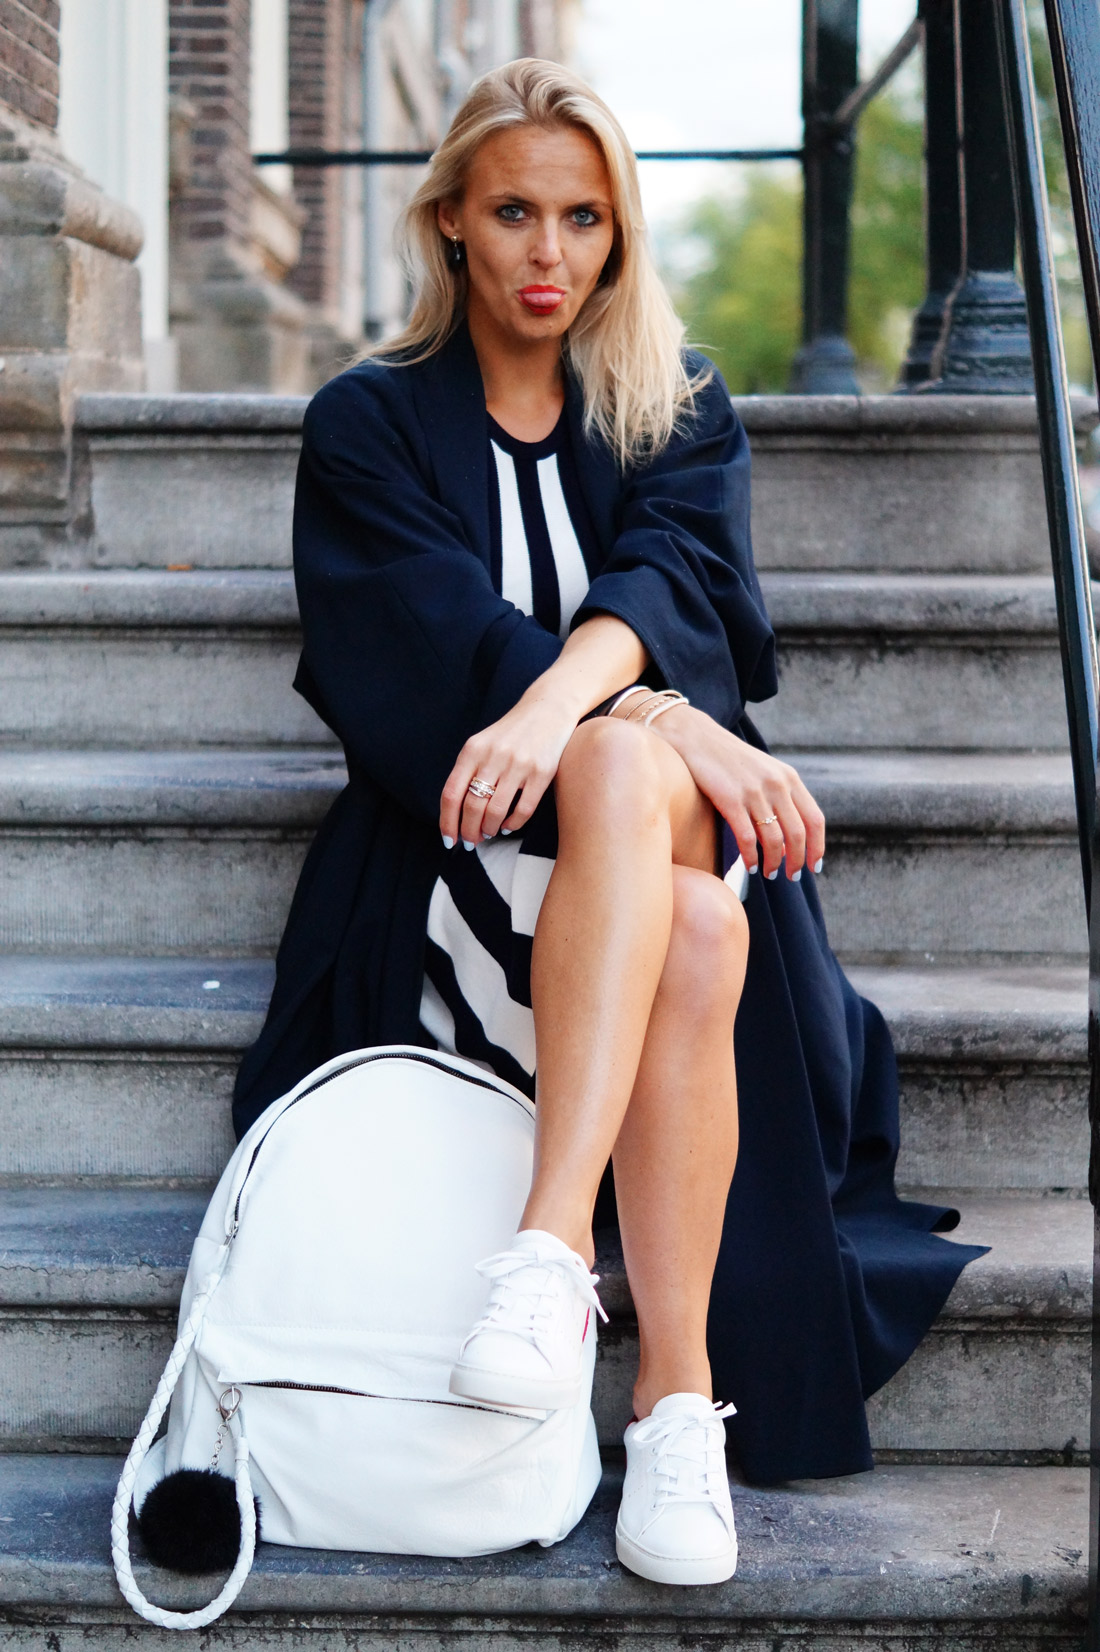 Bag-at-You---Fashion-blog---Hip-E-Backpack---Baglover-in-Amsterdam-with-maxi-coat-and-striped-dress